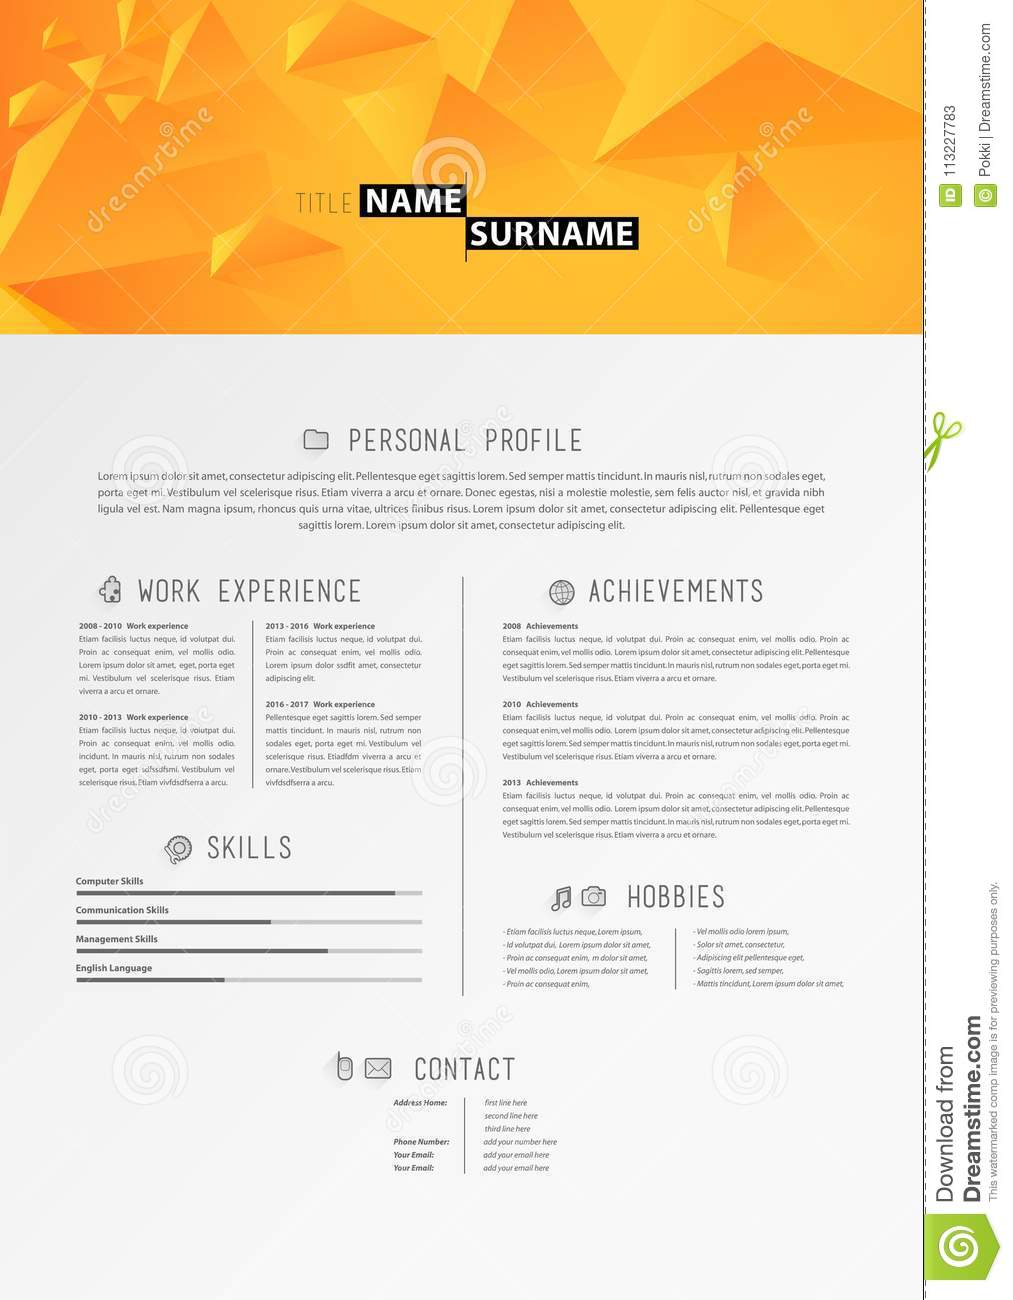 download creative simple cv template with orange triangles in header stock vector illustration of